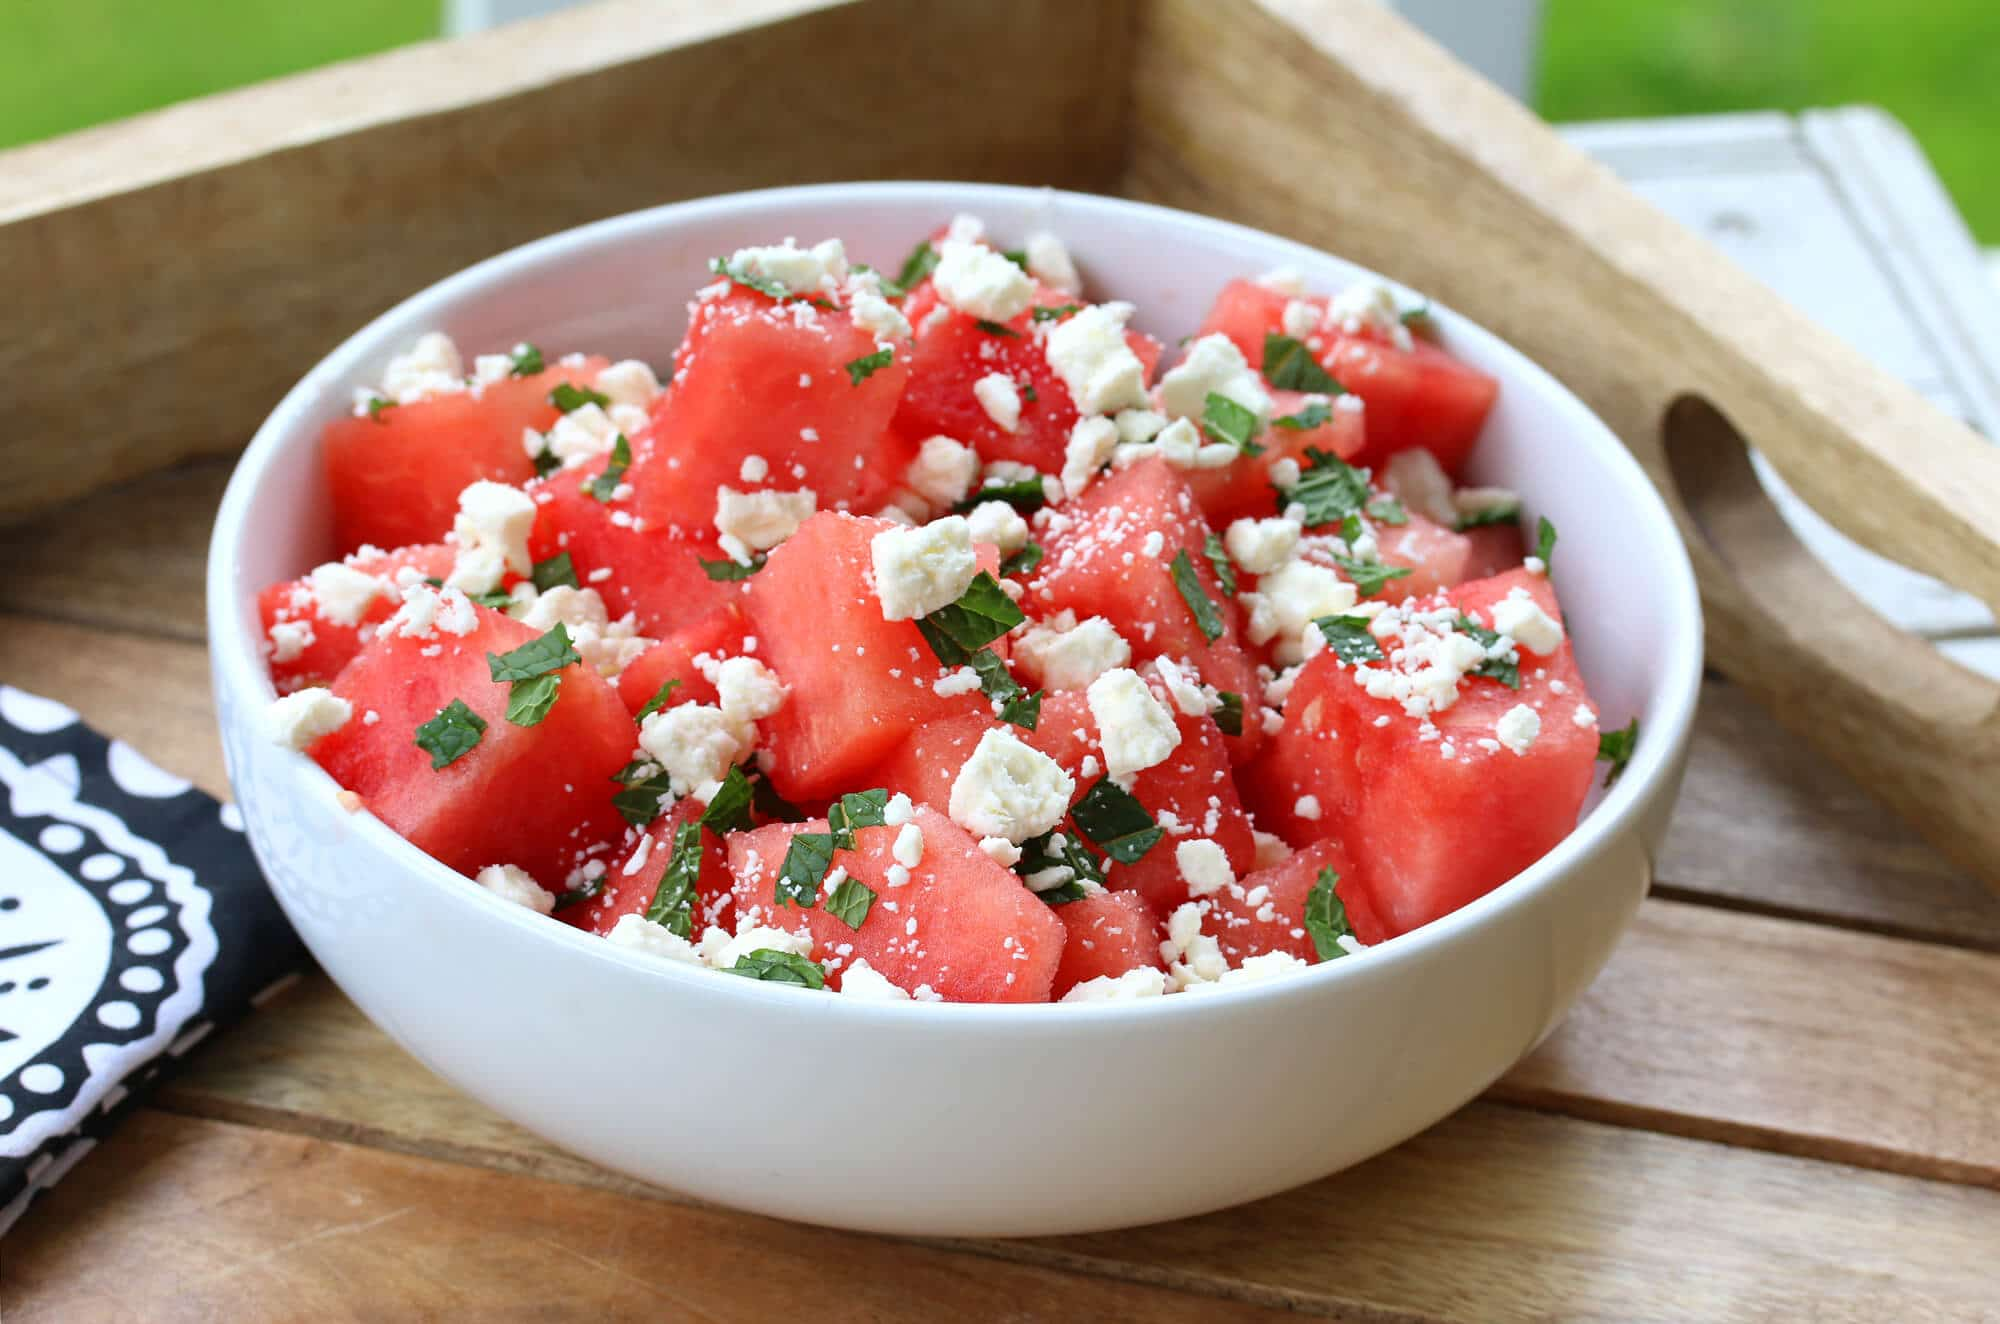 watermelon salad recipe mint feta lime lemon citrus